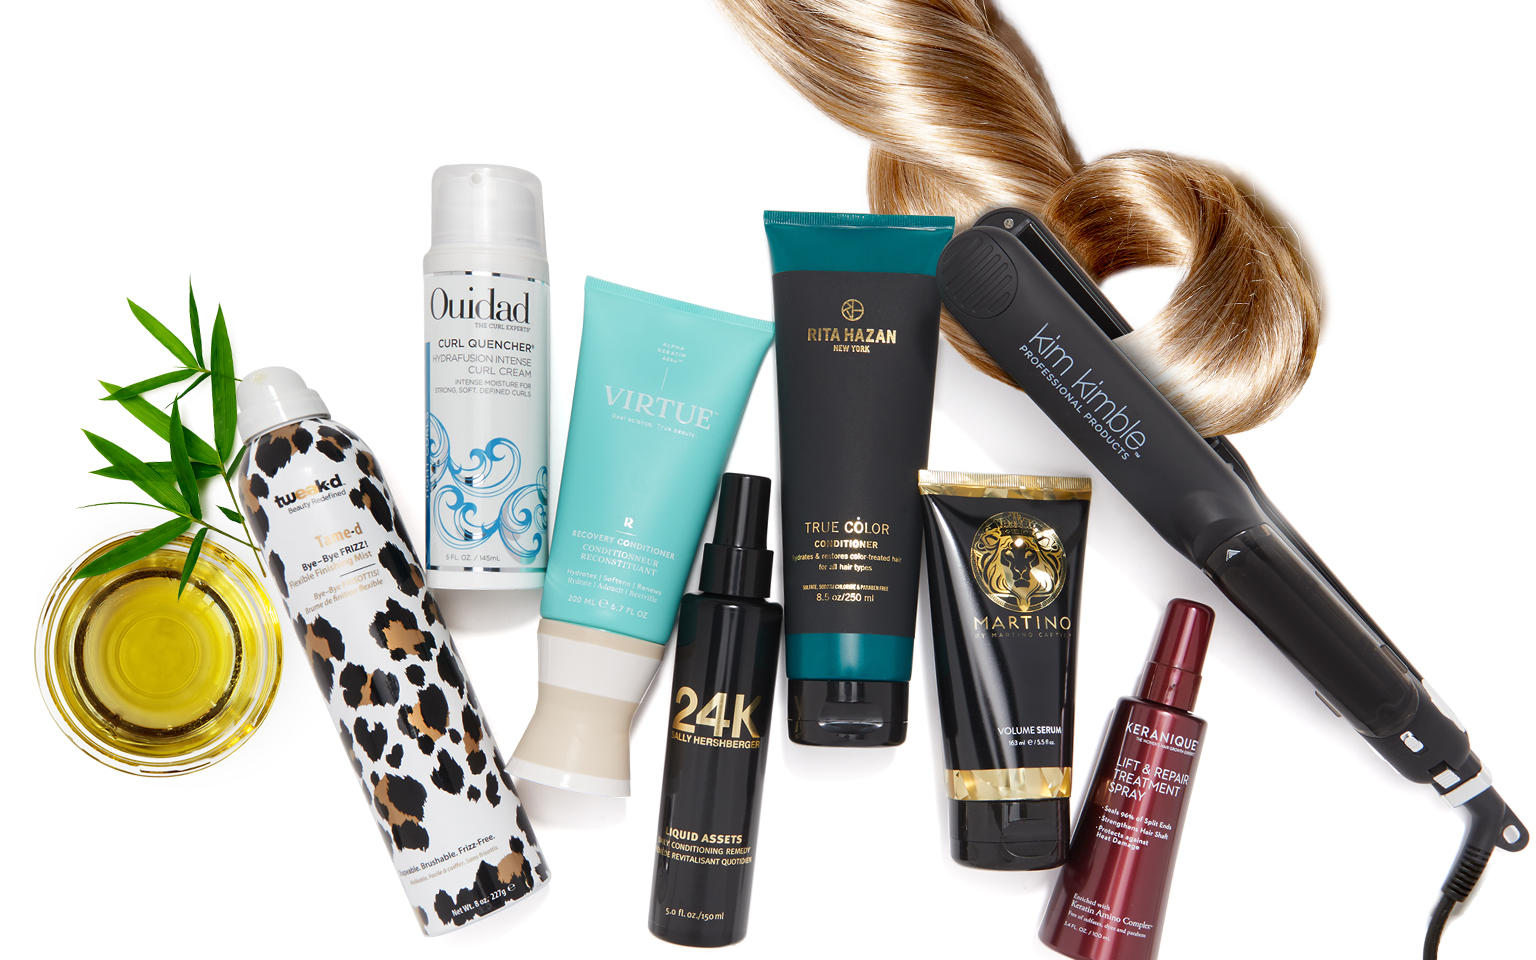 New This Season Hair Brushes Combs Hsn